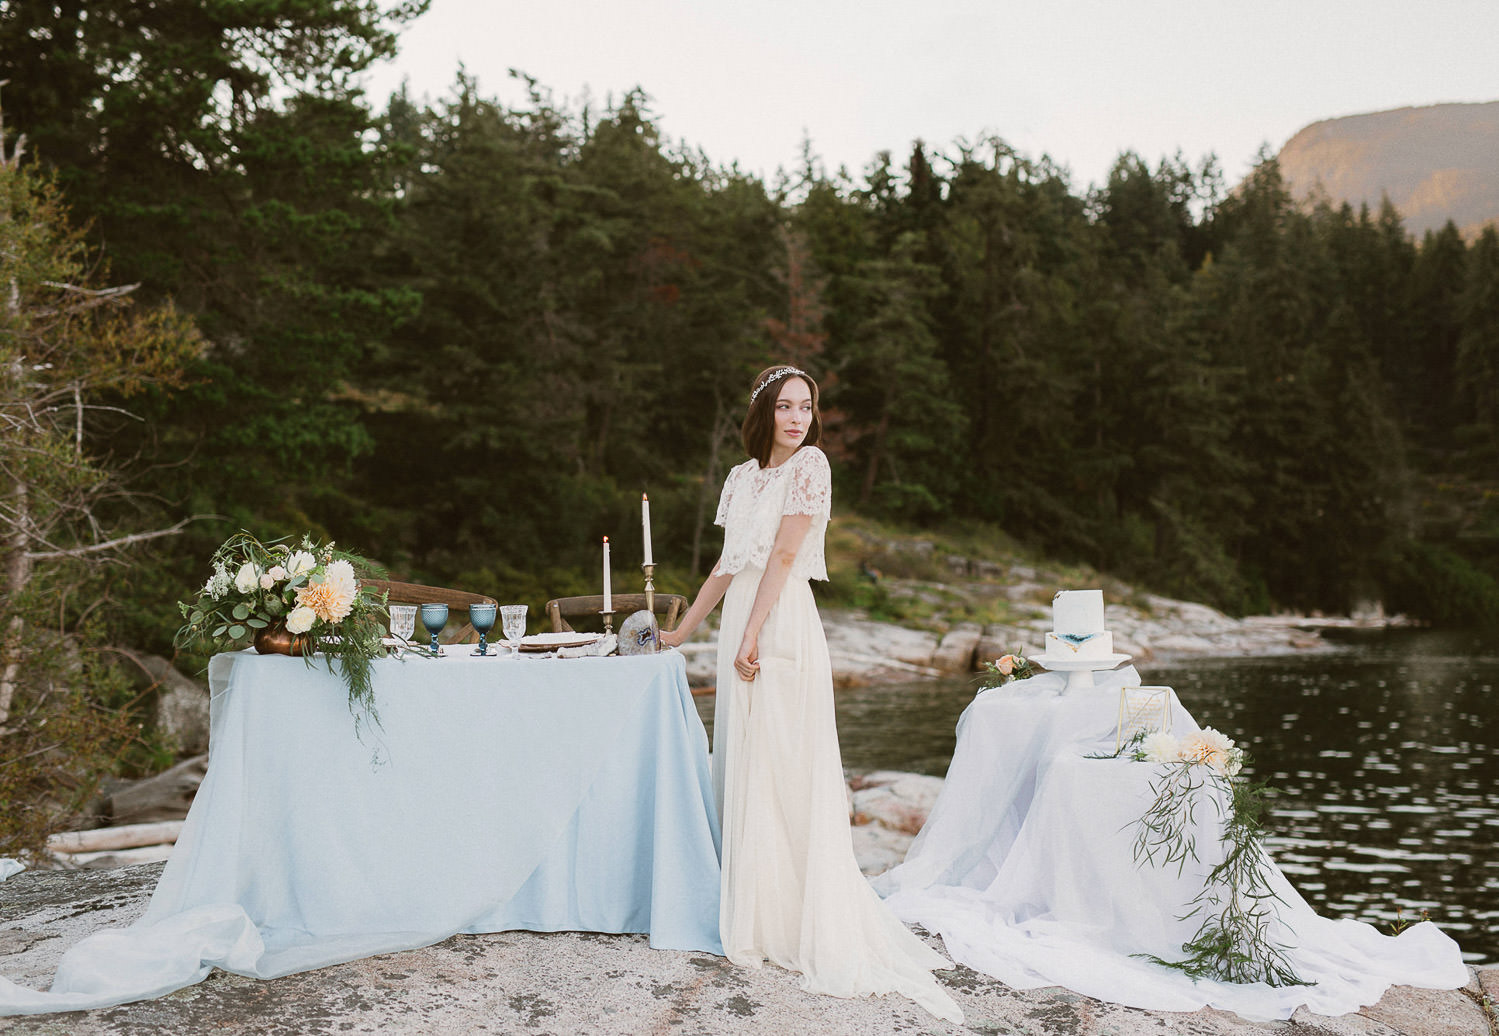 Refined wedding decor for an ethereal boho wedding inspiration